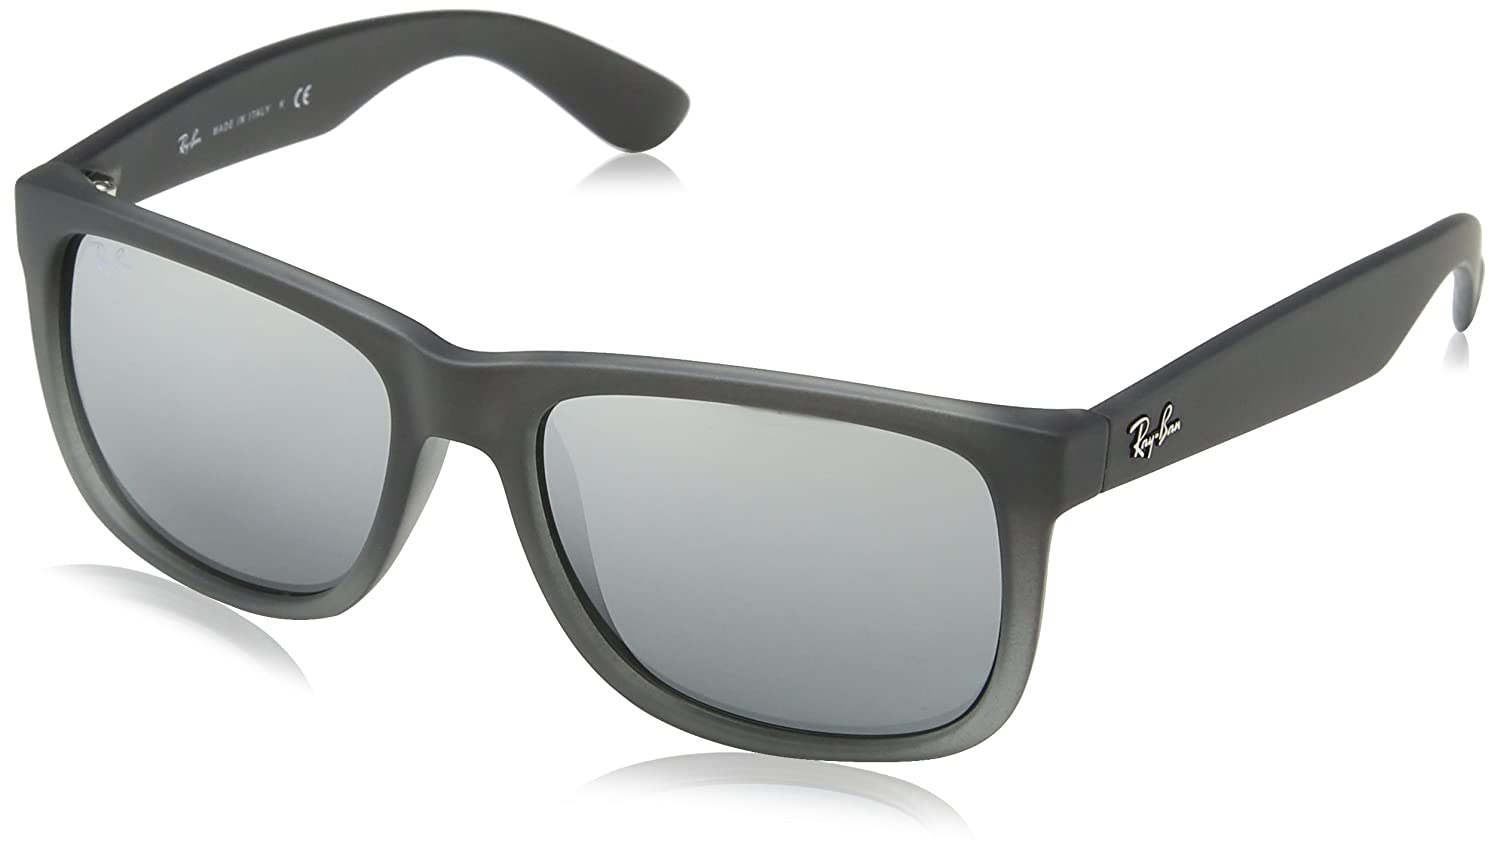 ray ban rb4165 justin wayfarer non polarized sunglasses grey 852 88 ebay. Black Bedroom Furniture Sets. Home Design Ideas